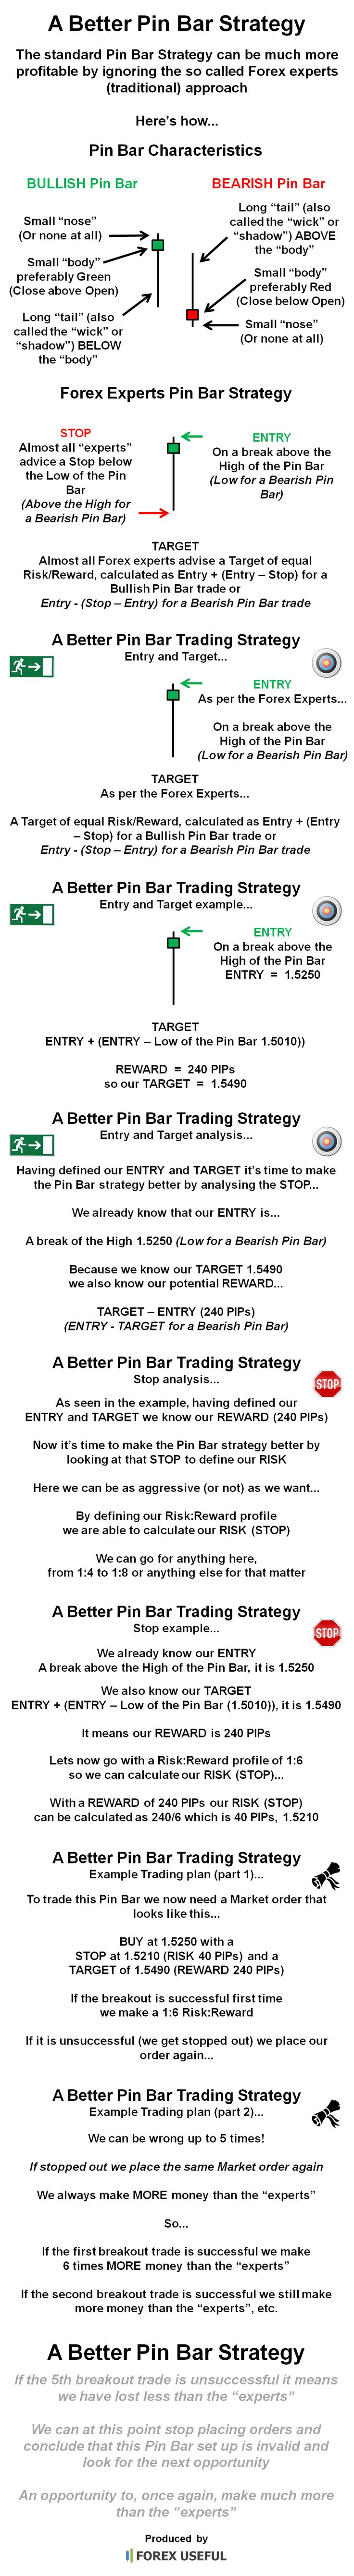 The standard Pin Bar Strategy can be much more profitable by ignoring the so called Forex experts (traditional) approach, here's how...